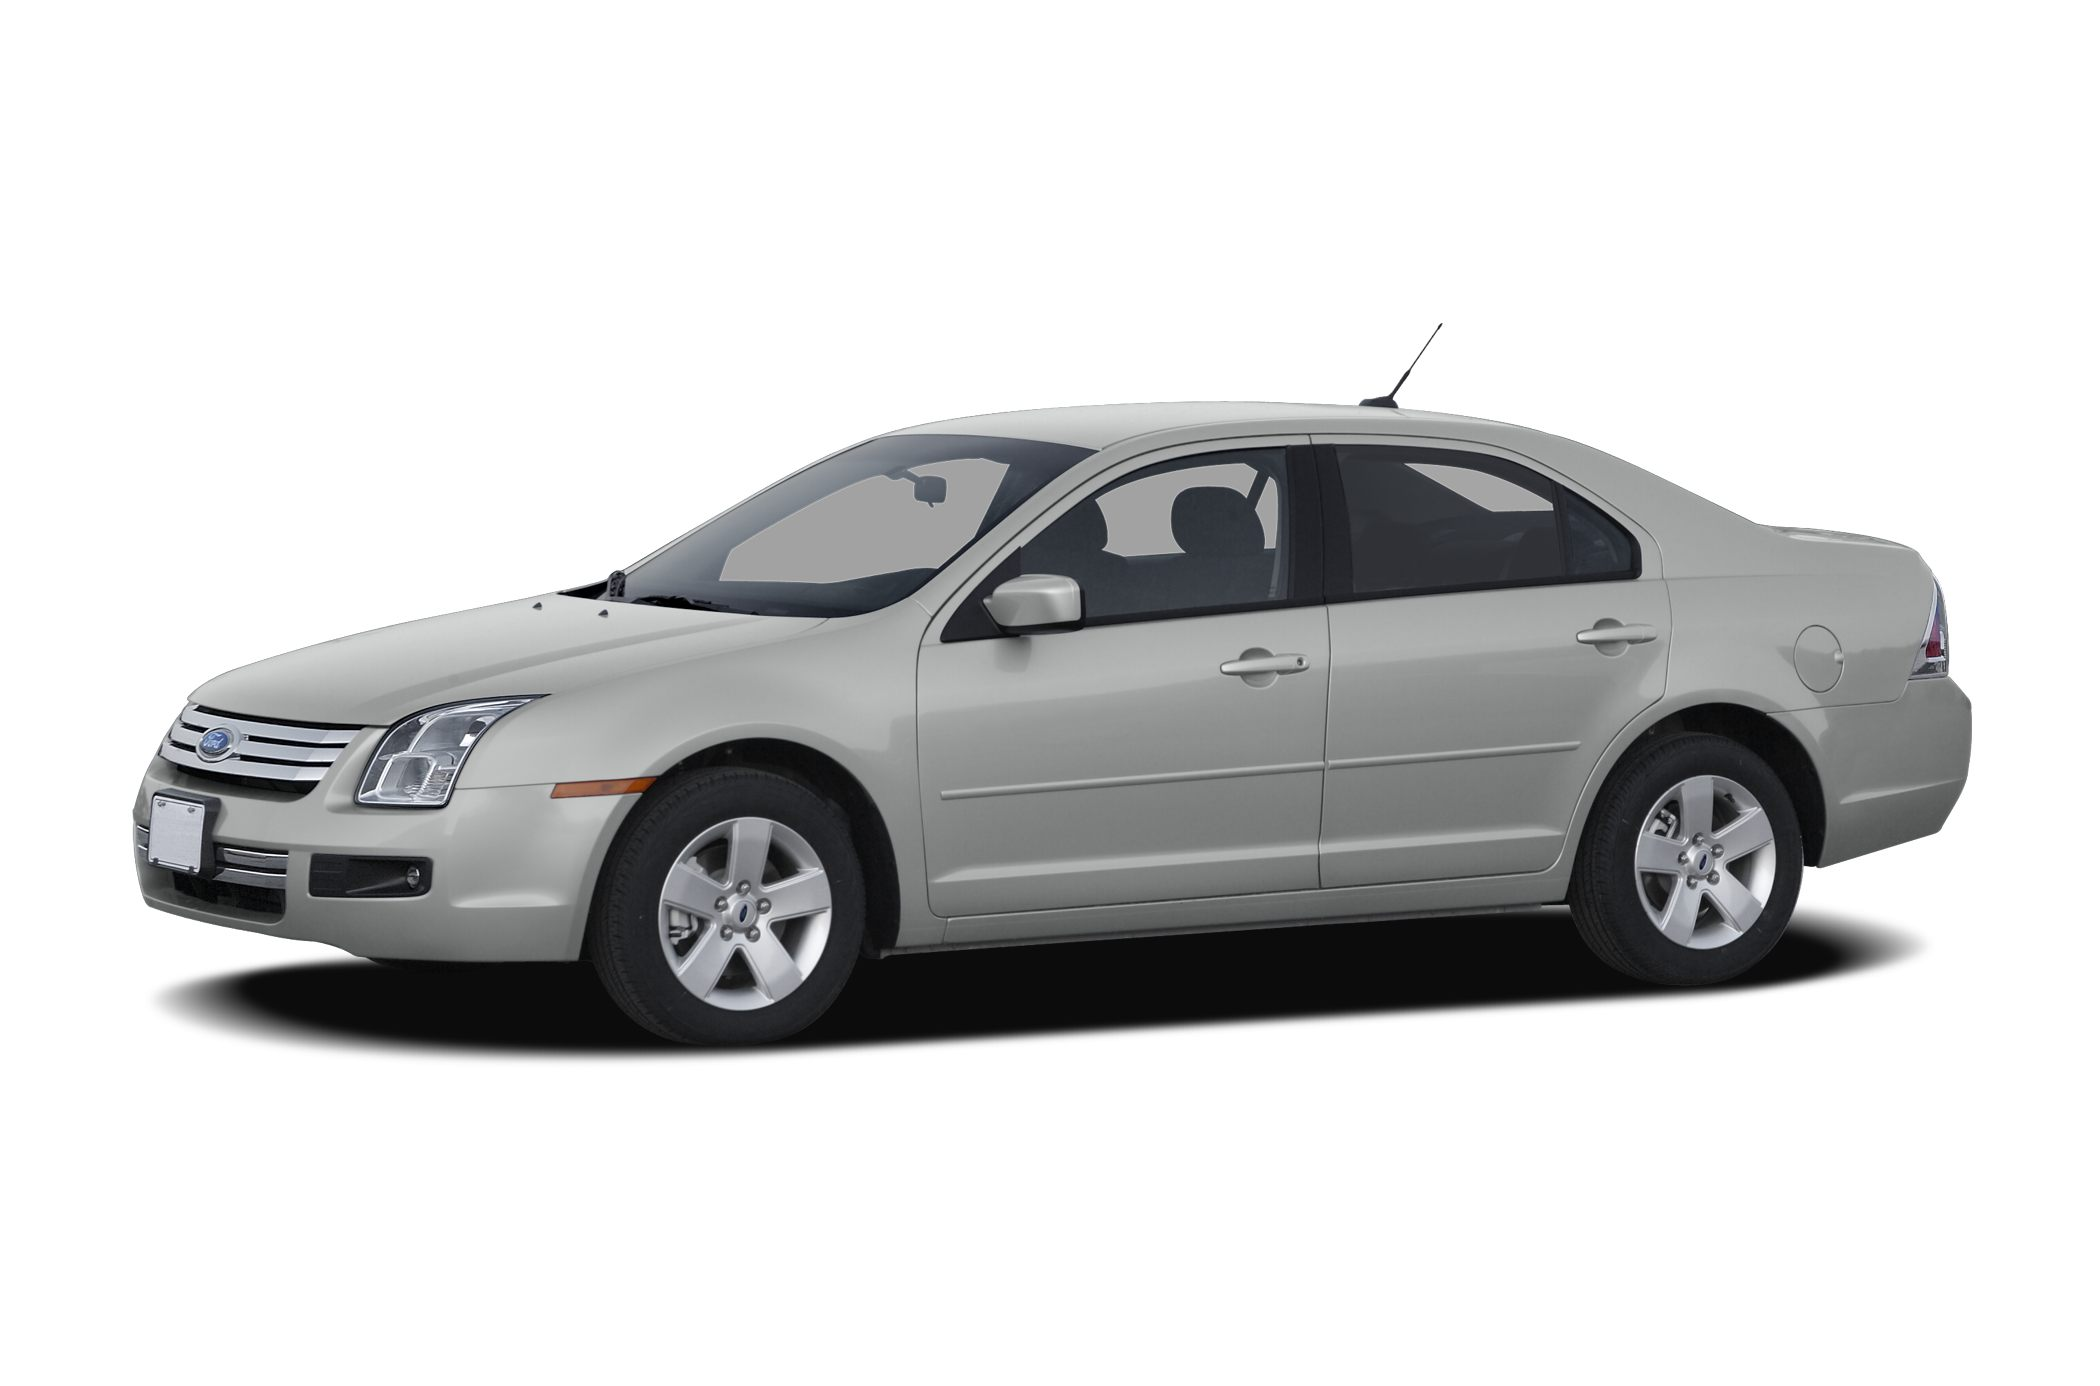 2009 Ford Fusion SE This extremely well maintained Fusion is a great buy for anyone looking for a